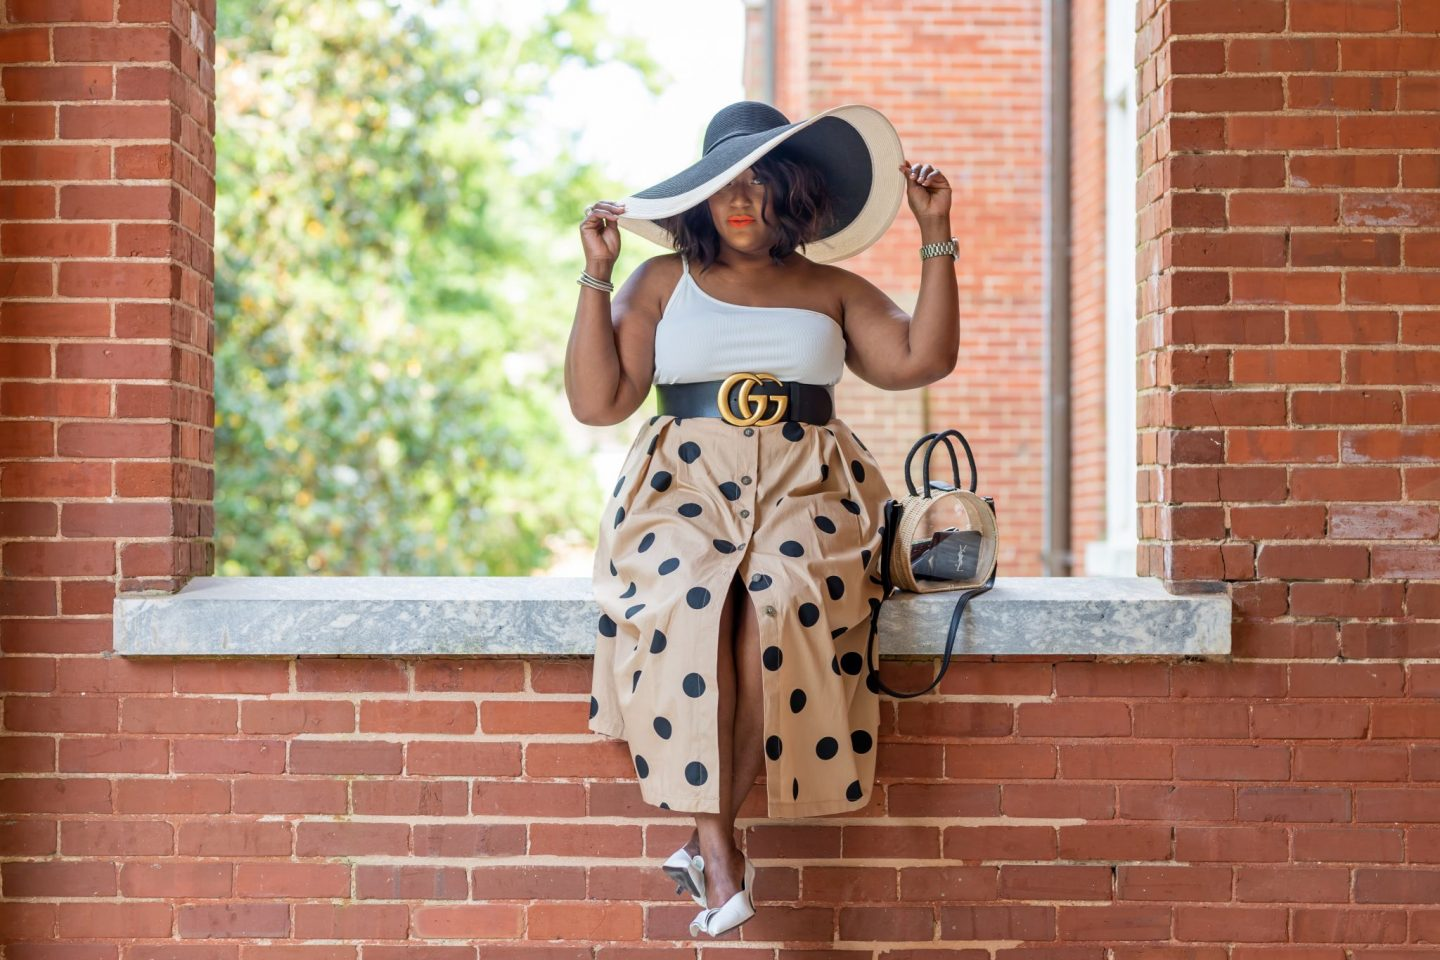 Blogger Nikki Free wearing khaki skirt with black polka dot print sitting on a brick wall